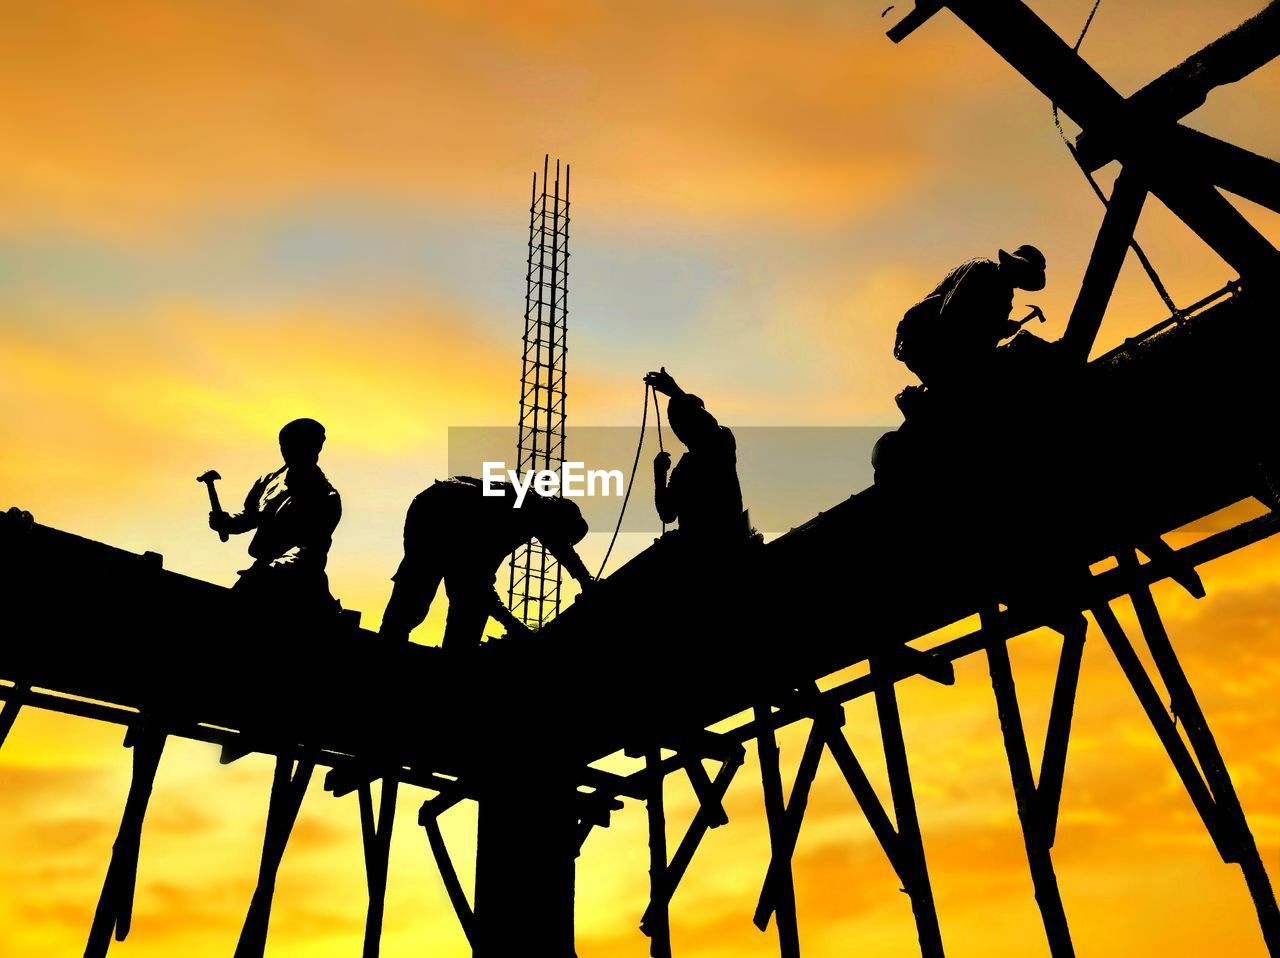 sunset, silhouette, sky, orange color, group of people, cloud - sky, real people, nature, construction industry, construction site, men, low angle view, industry, architecture, outdoors, machinery, development, built structure, occupation